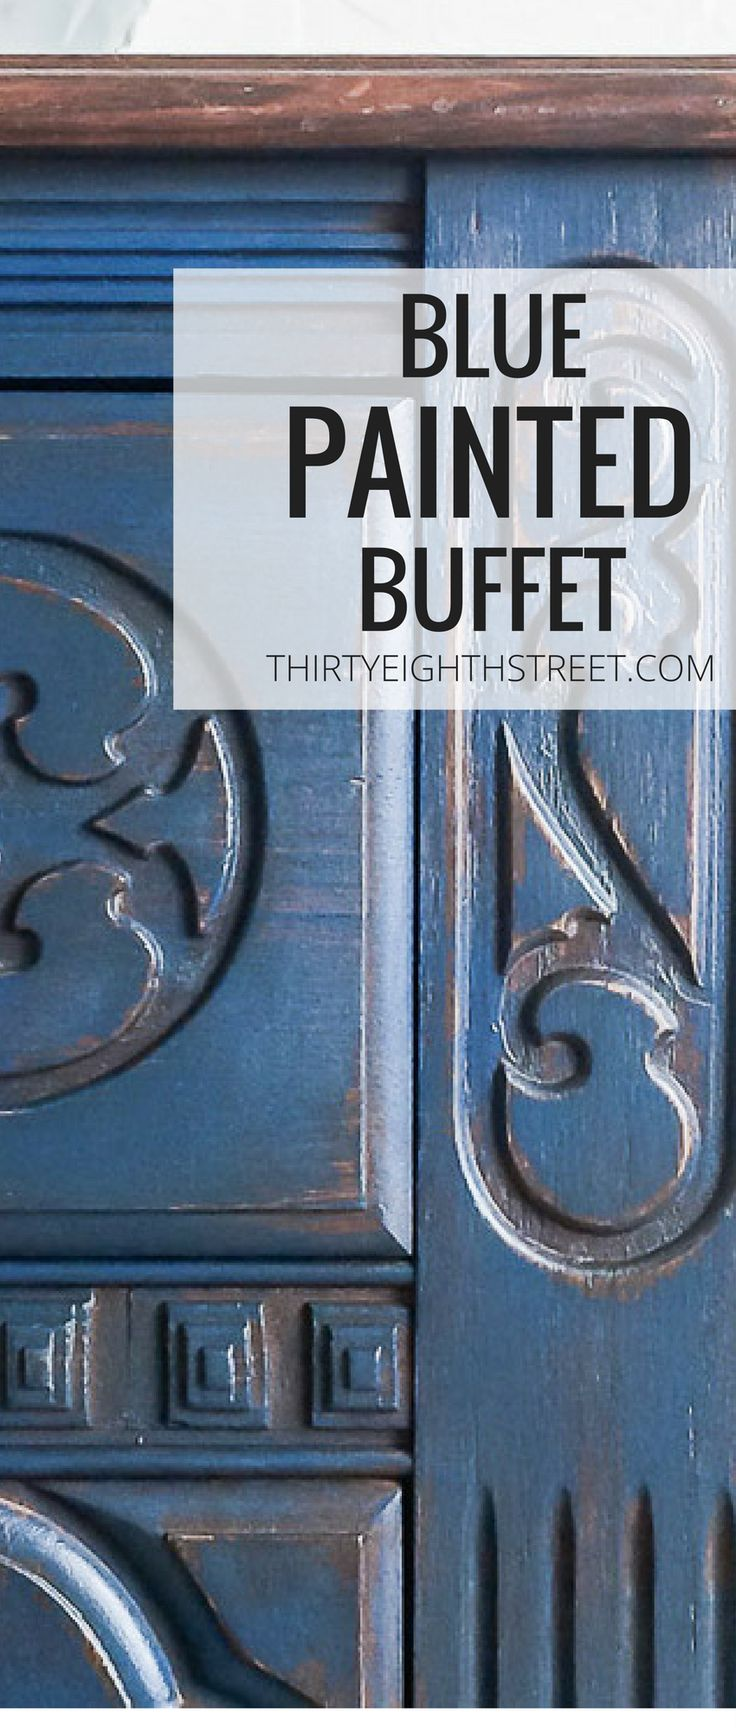 How To Paint and Distress Furniture. Blue Painted And Distressed Buffet. Blue Furniture Ideas. Farmhouse Furniture Inspiration. How To Paint and Distress Furniture Without ANY Sandpaper. Chalk Painted Buffets. Buffet Makeovers. #bluefurniture #paintedbuffet #buffetmakeovers #paintedfurniture